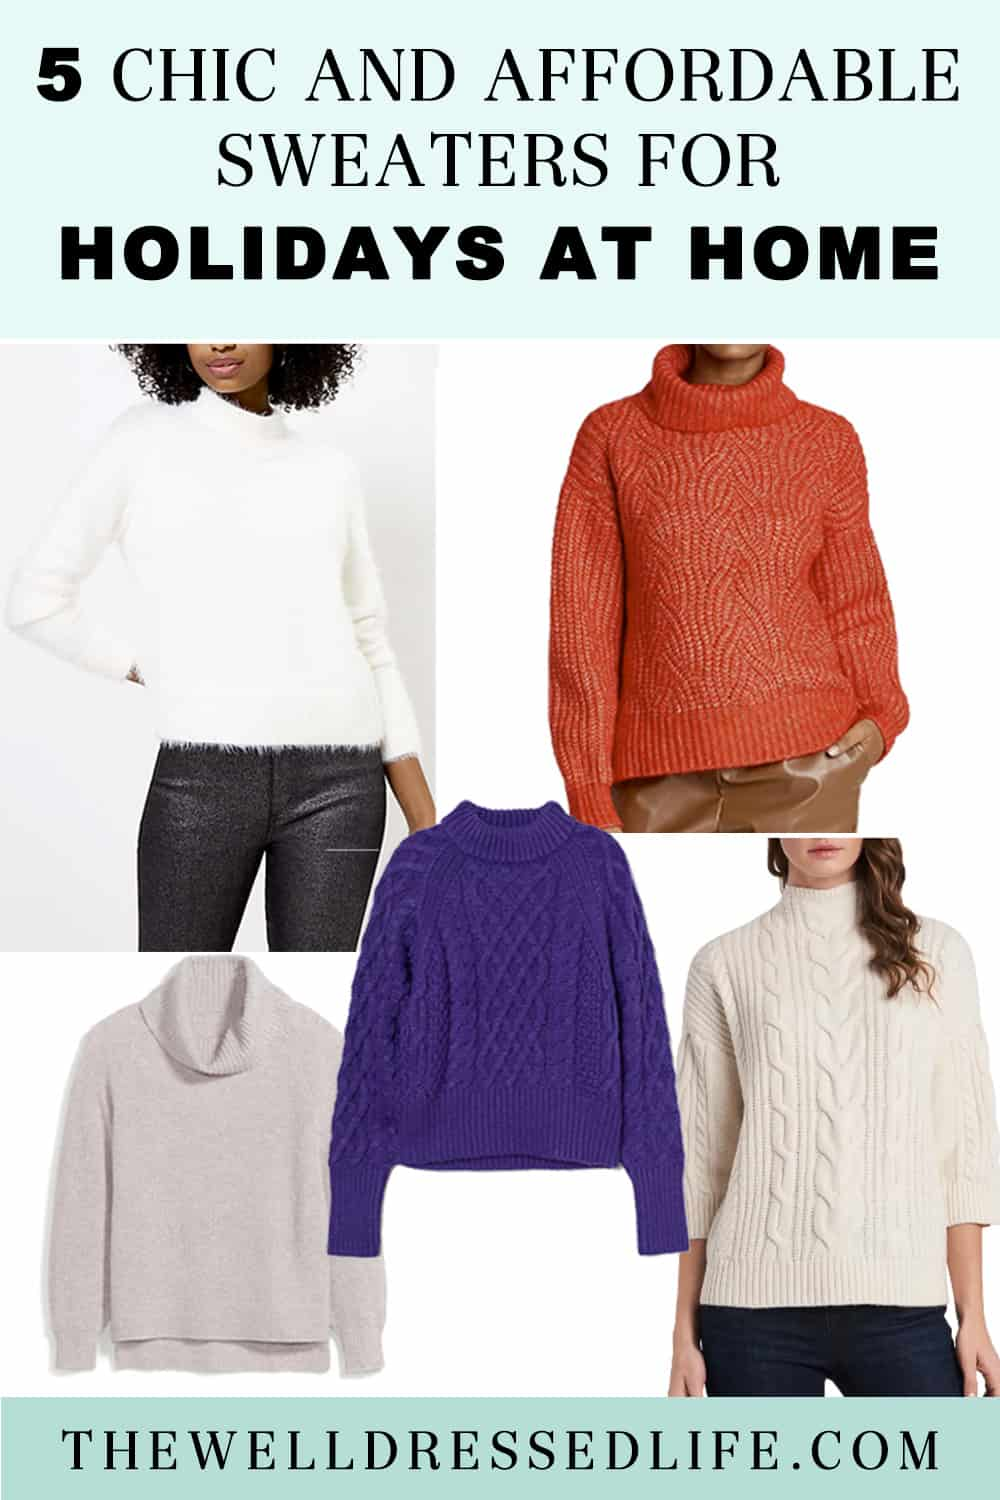 Holidays at Home: Chic and Affordable Sweaters